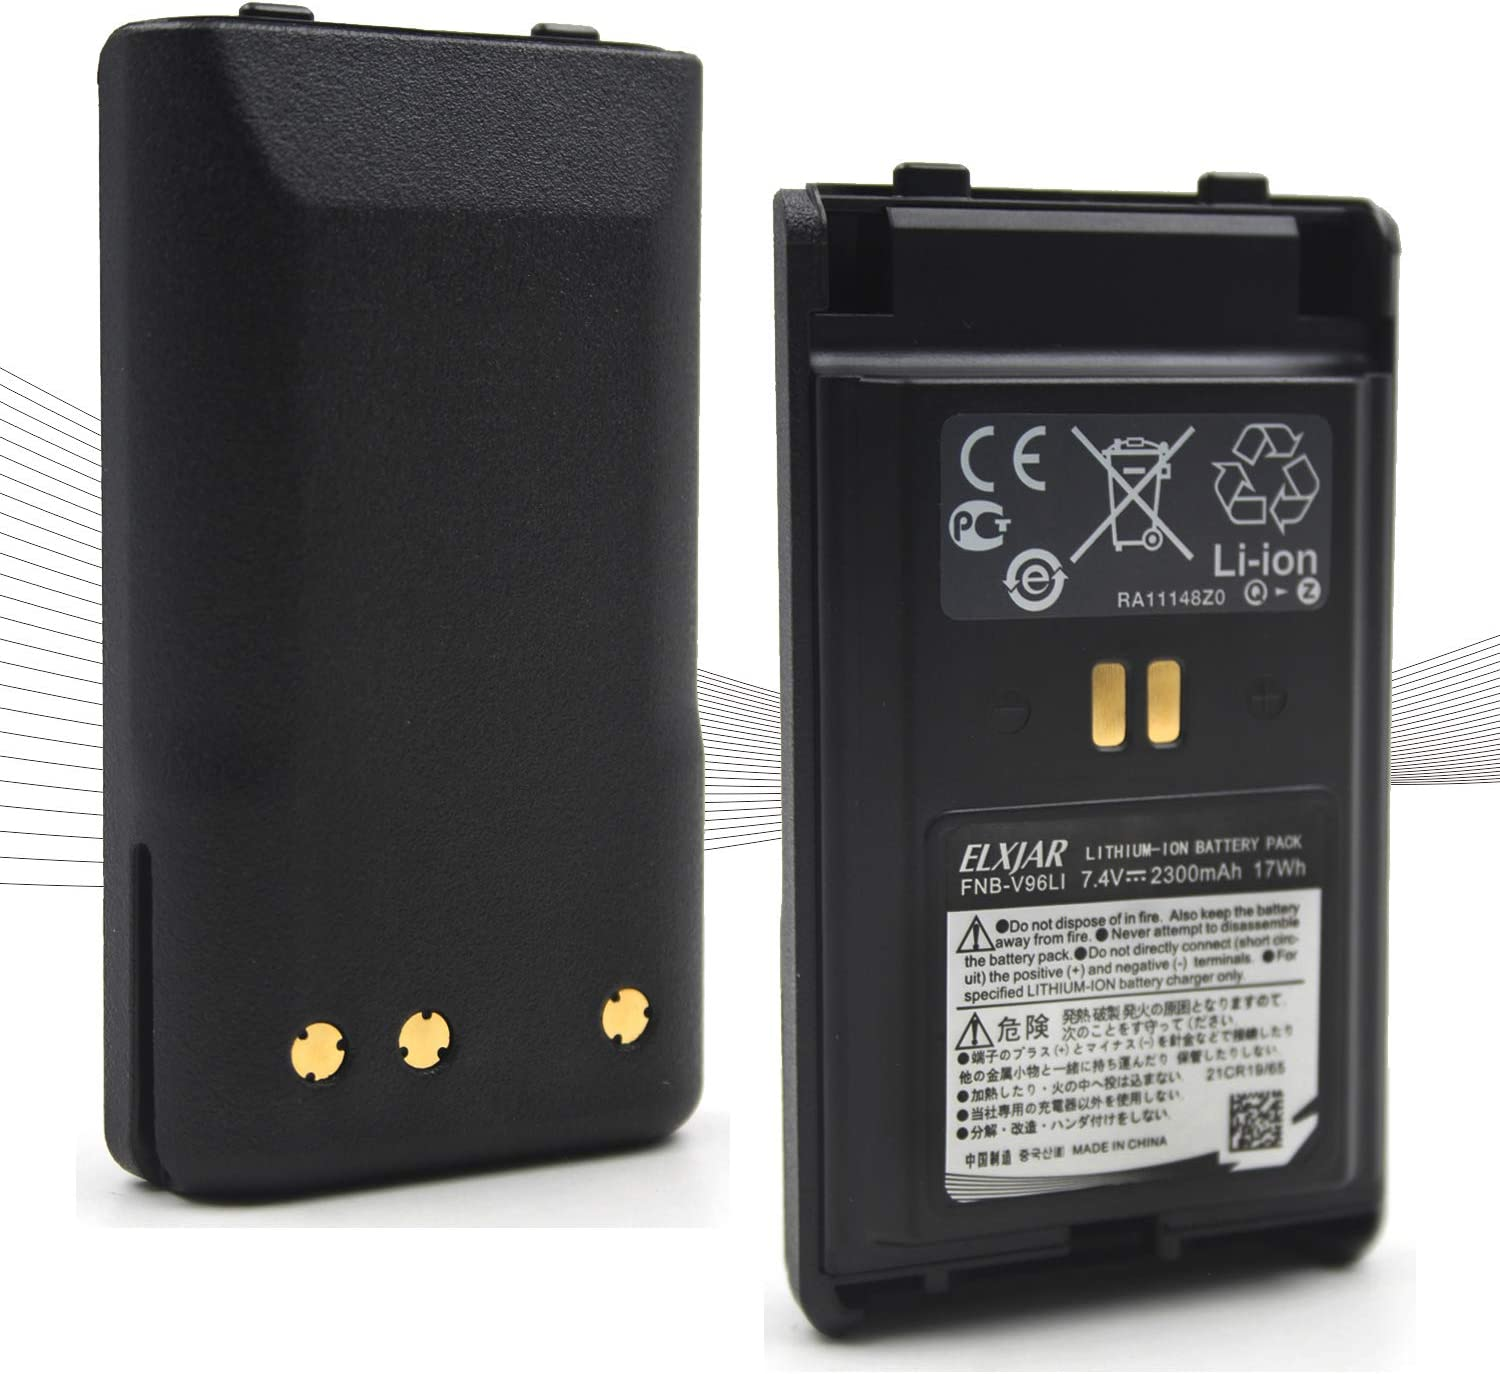 sold out 2-Pack 7.4V 2300mAh FNB-V96LiA for Las Vegas Mall Replacement Battery Li-ion